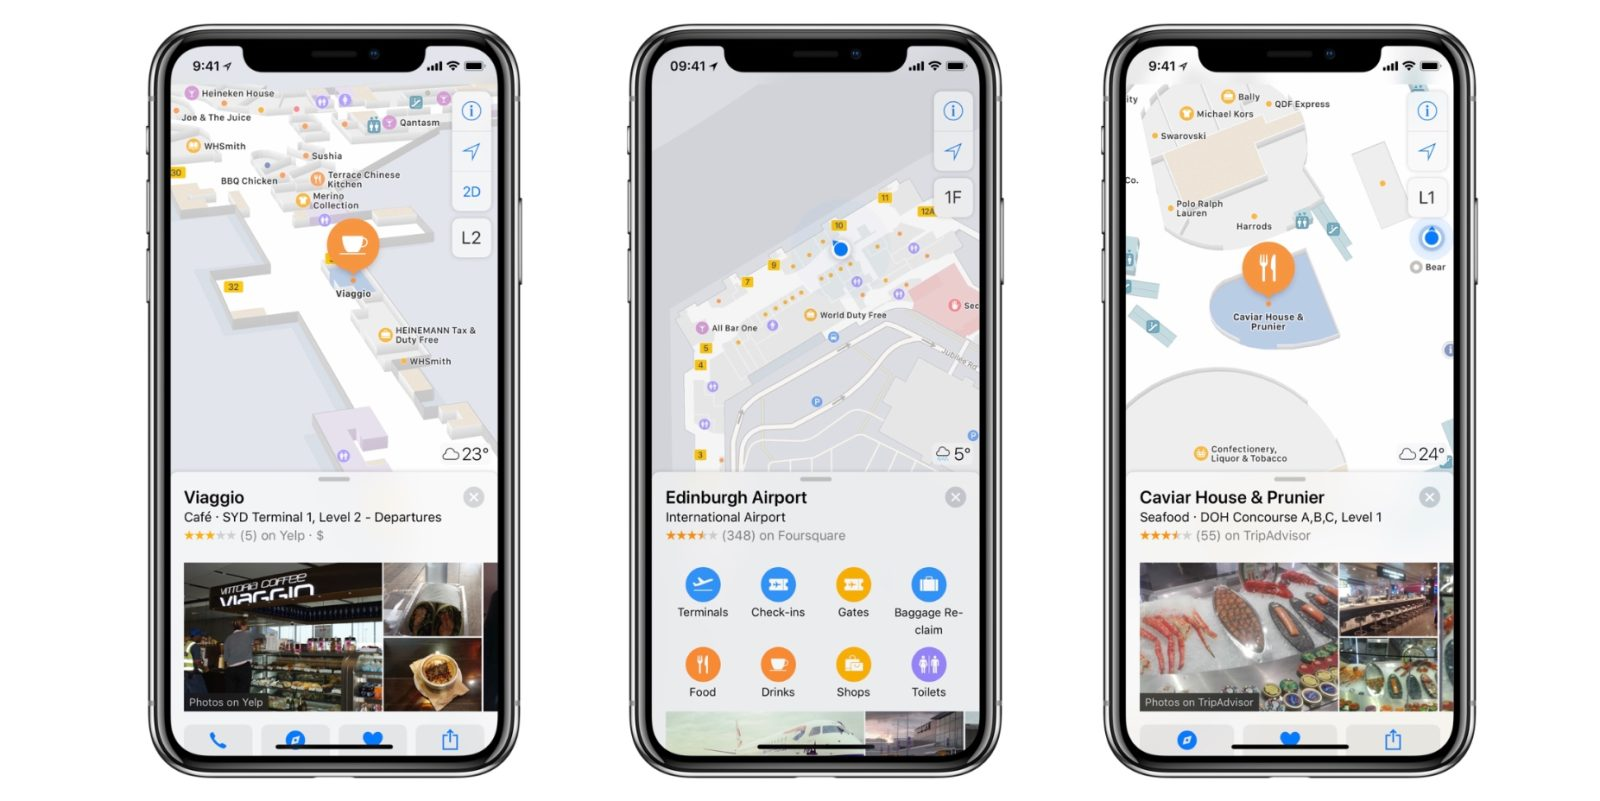 Apple Maps adds new indoor maps for three major international ... on traditional map, tropical jungle map, nature map, fashion map, metal map, daytime map, night map, security map, table map, color map, street map, studio map, high resolution map, general map, shopping map, medieval village layout map, business map, residential map, industrial map, office map,